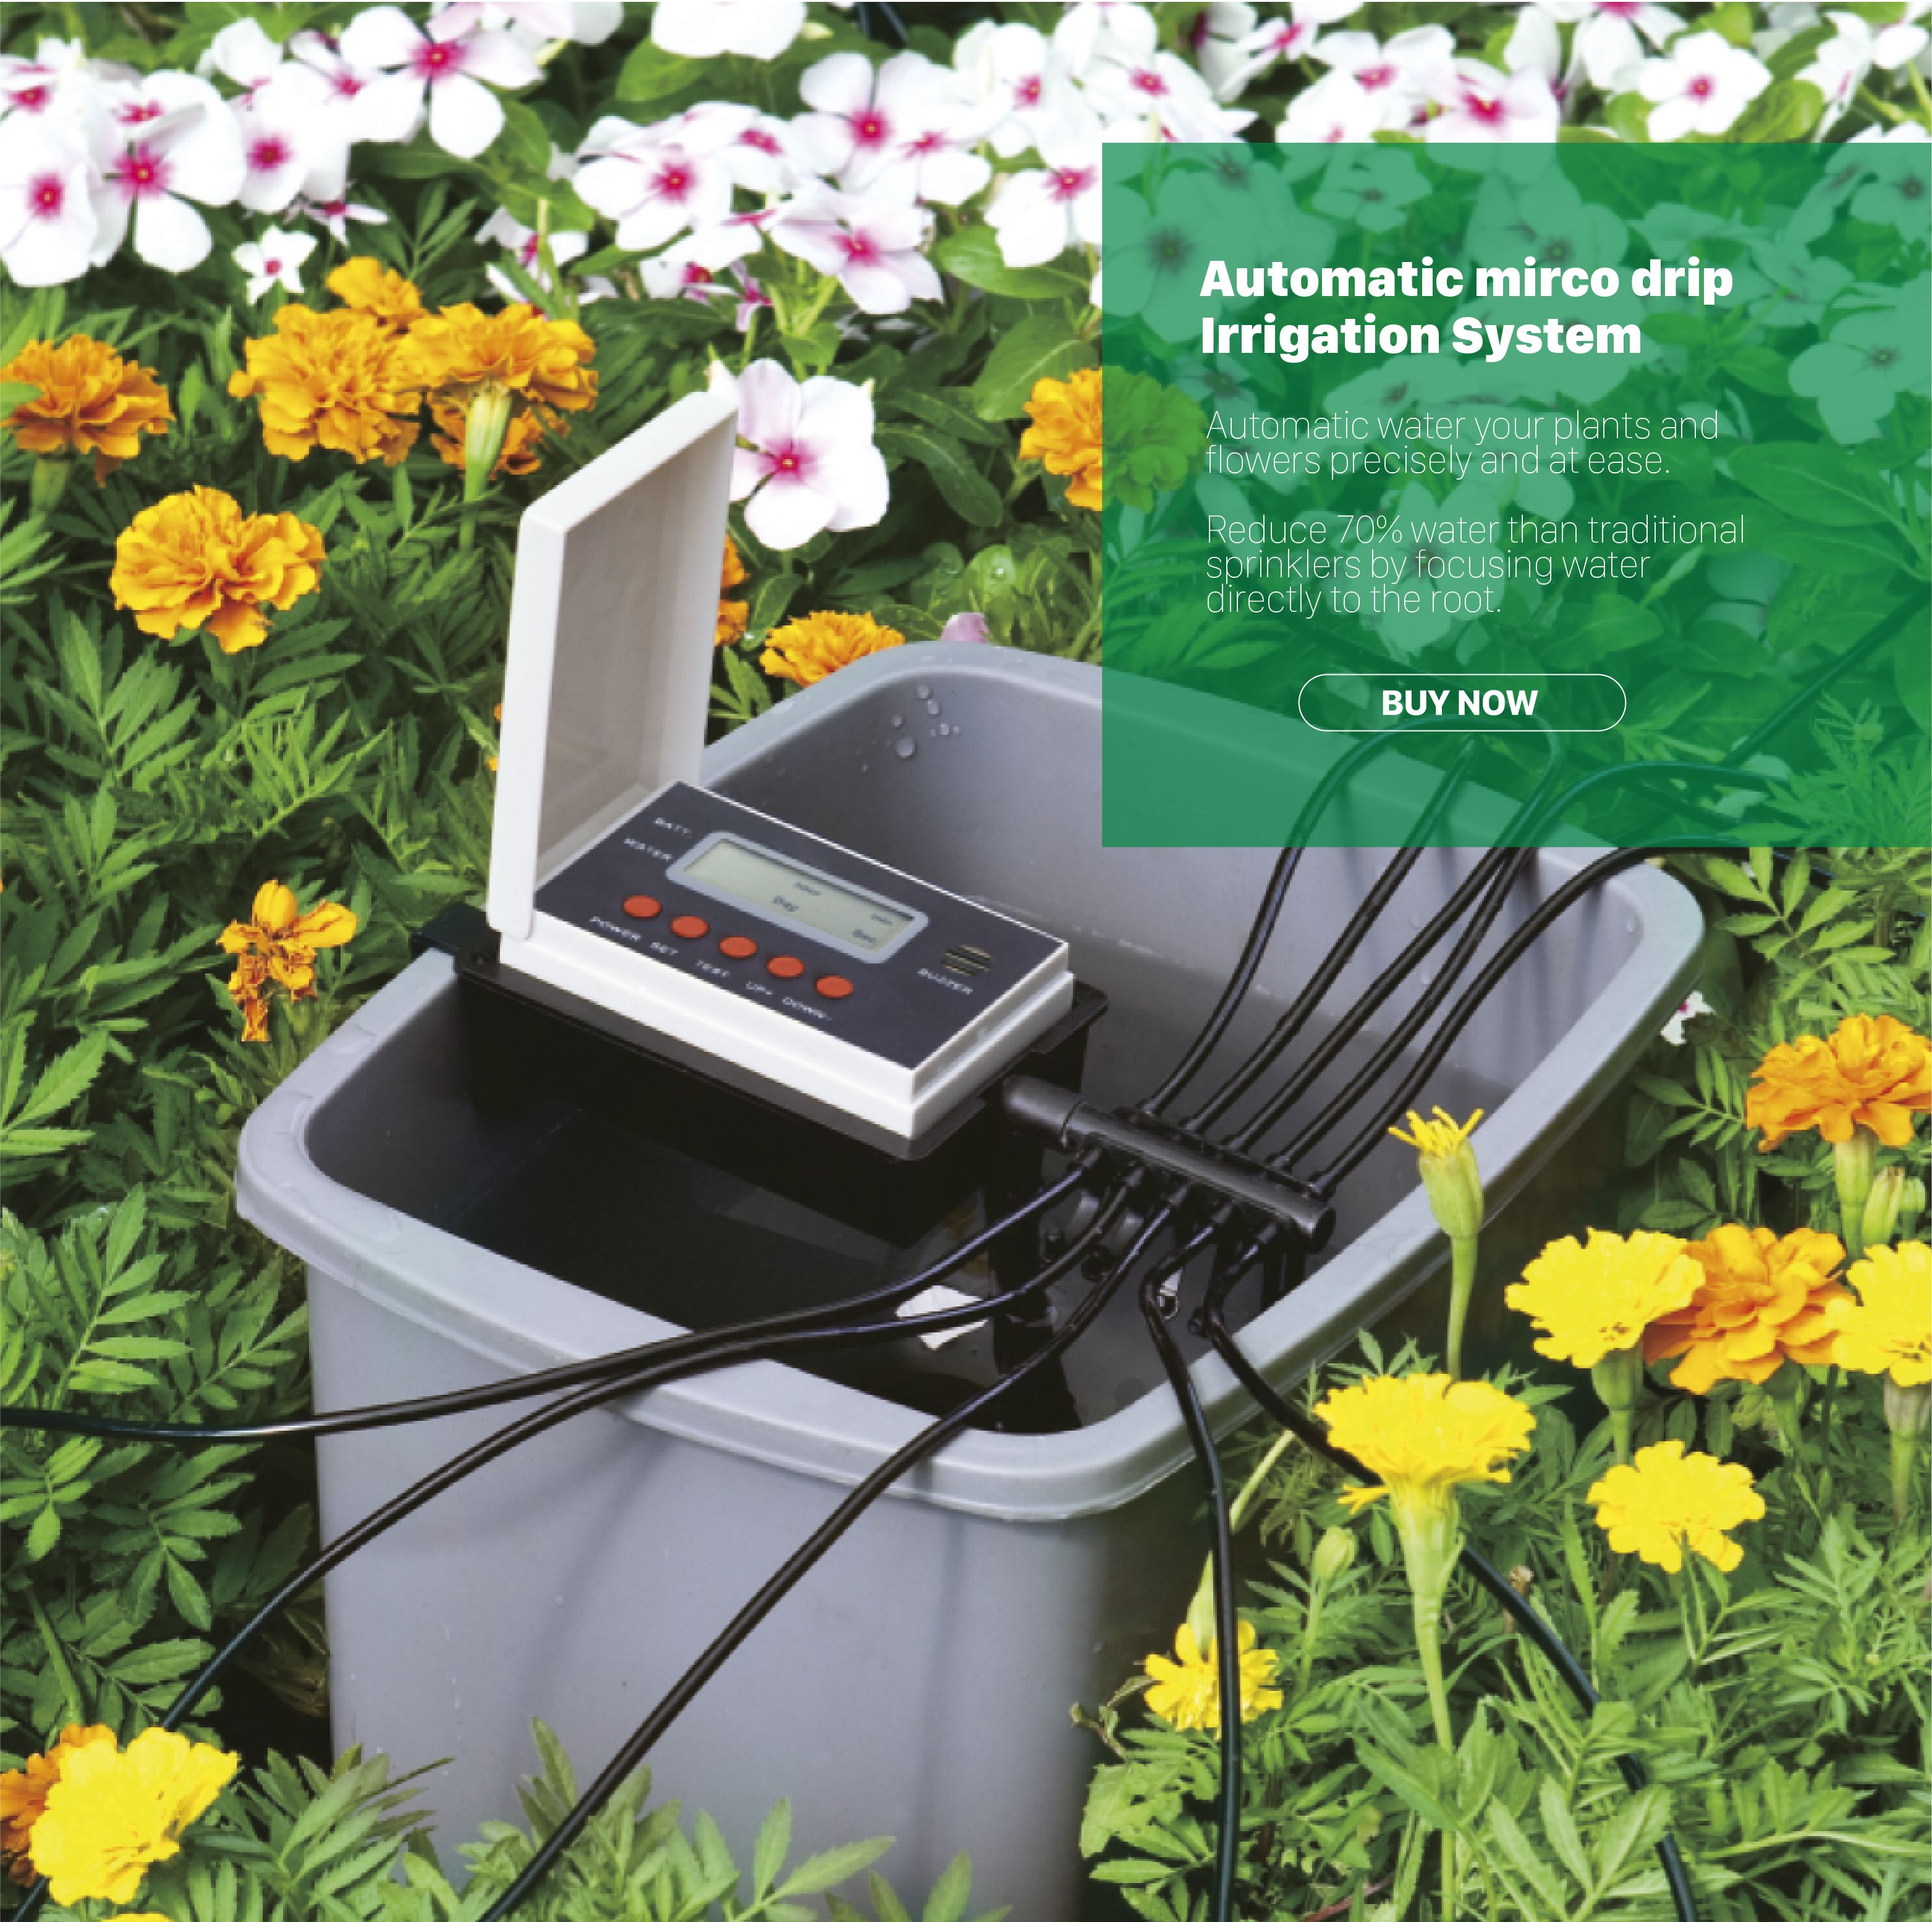 Automatic Water Your Plants And Flowers Precisely And At Ease Garden Irrigation System Drip Irrigation Kit Irrigation